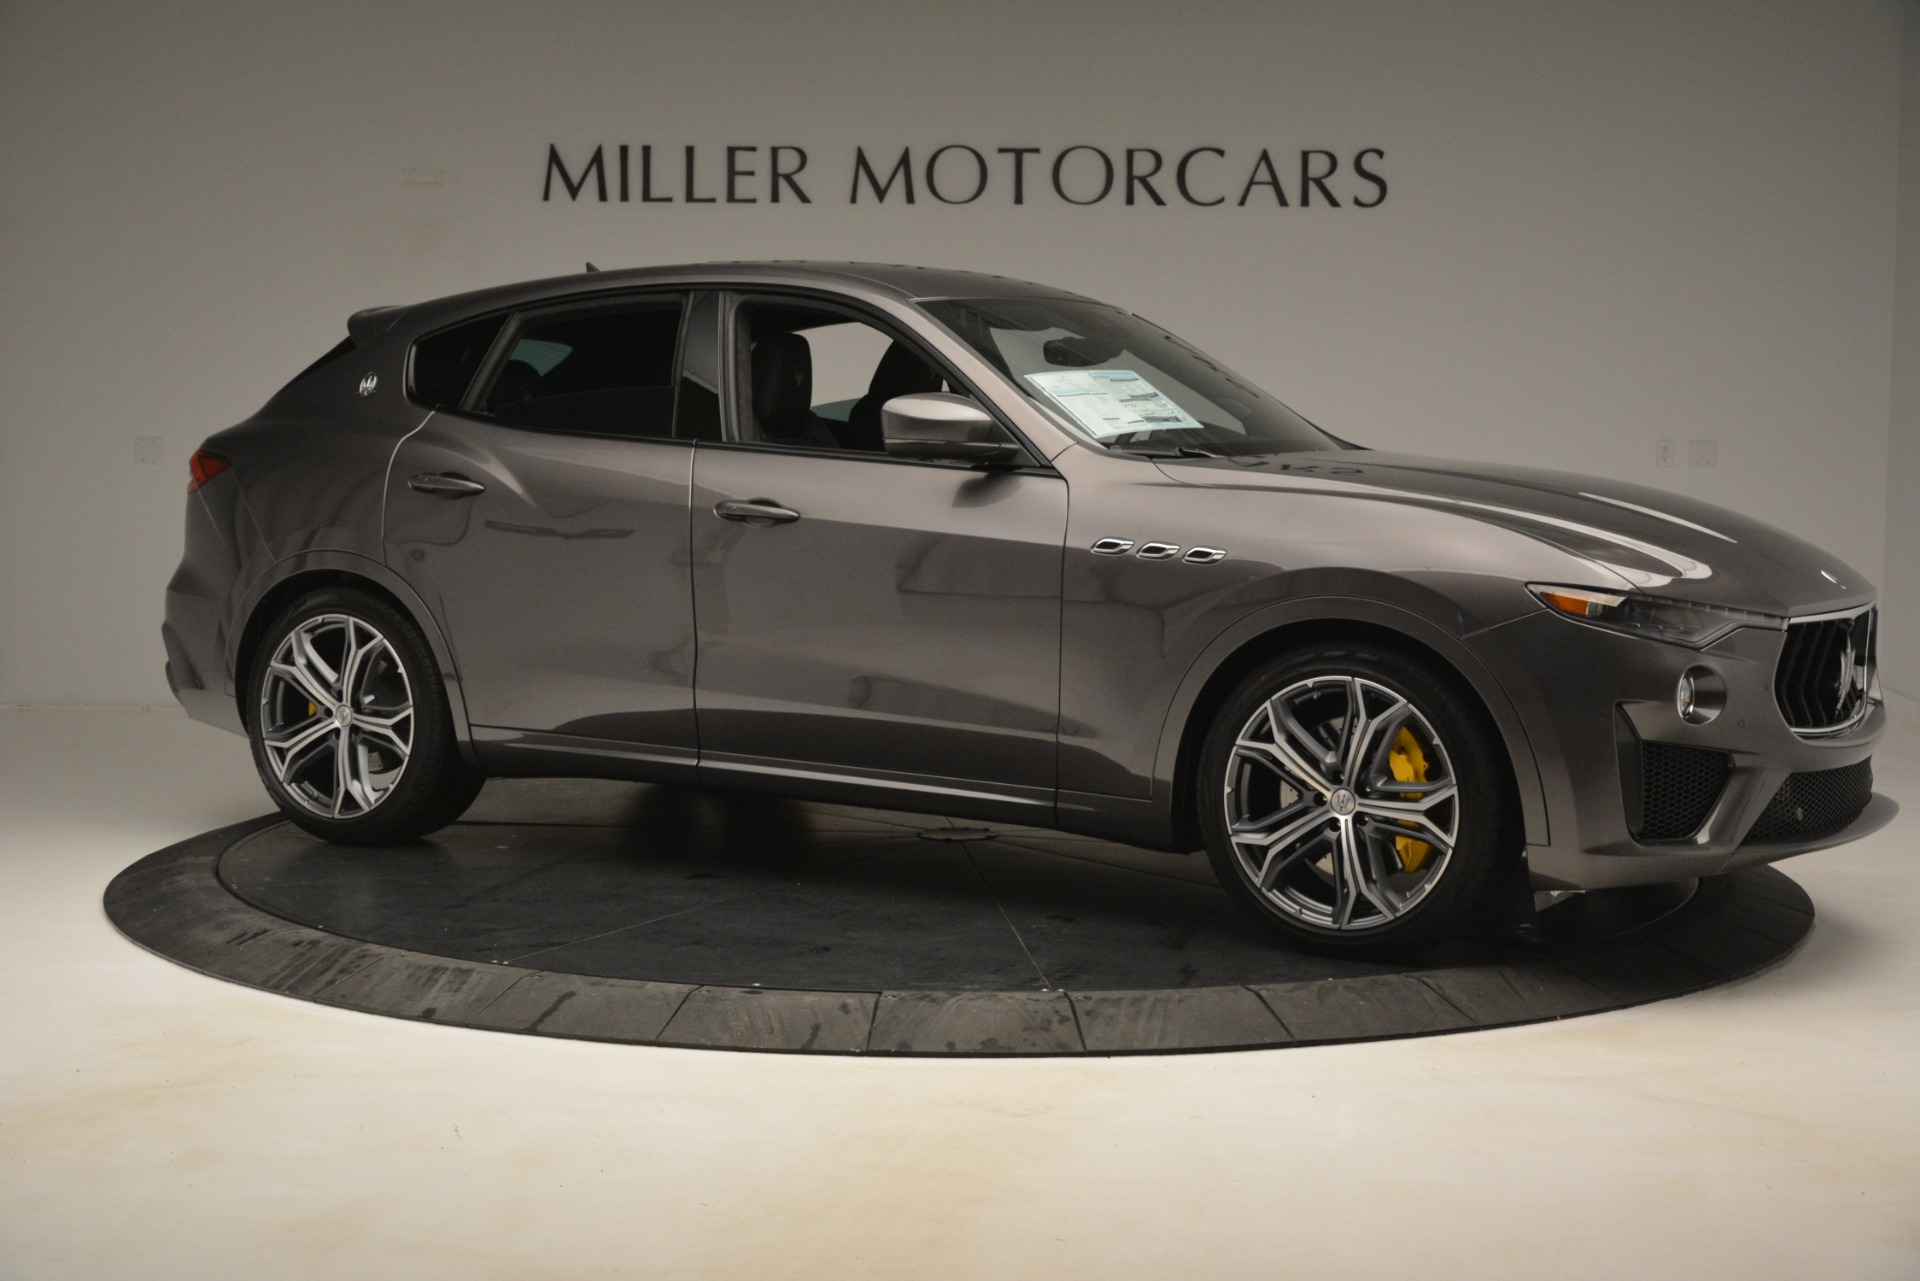 New 2019 Maserati Levante GTS For Sale In Westport, CT 3015_p10